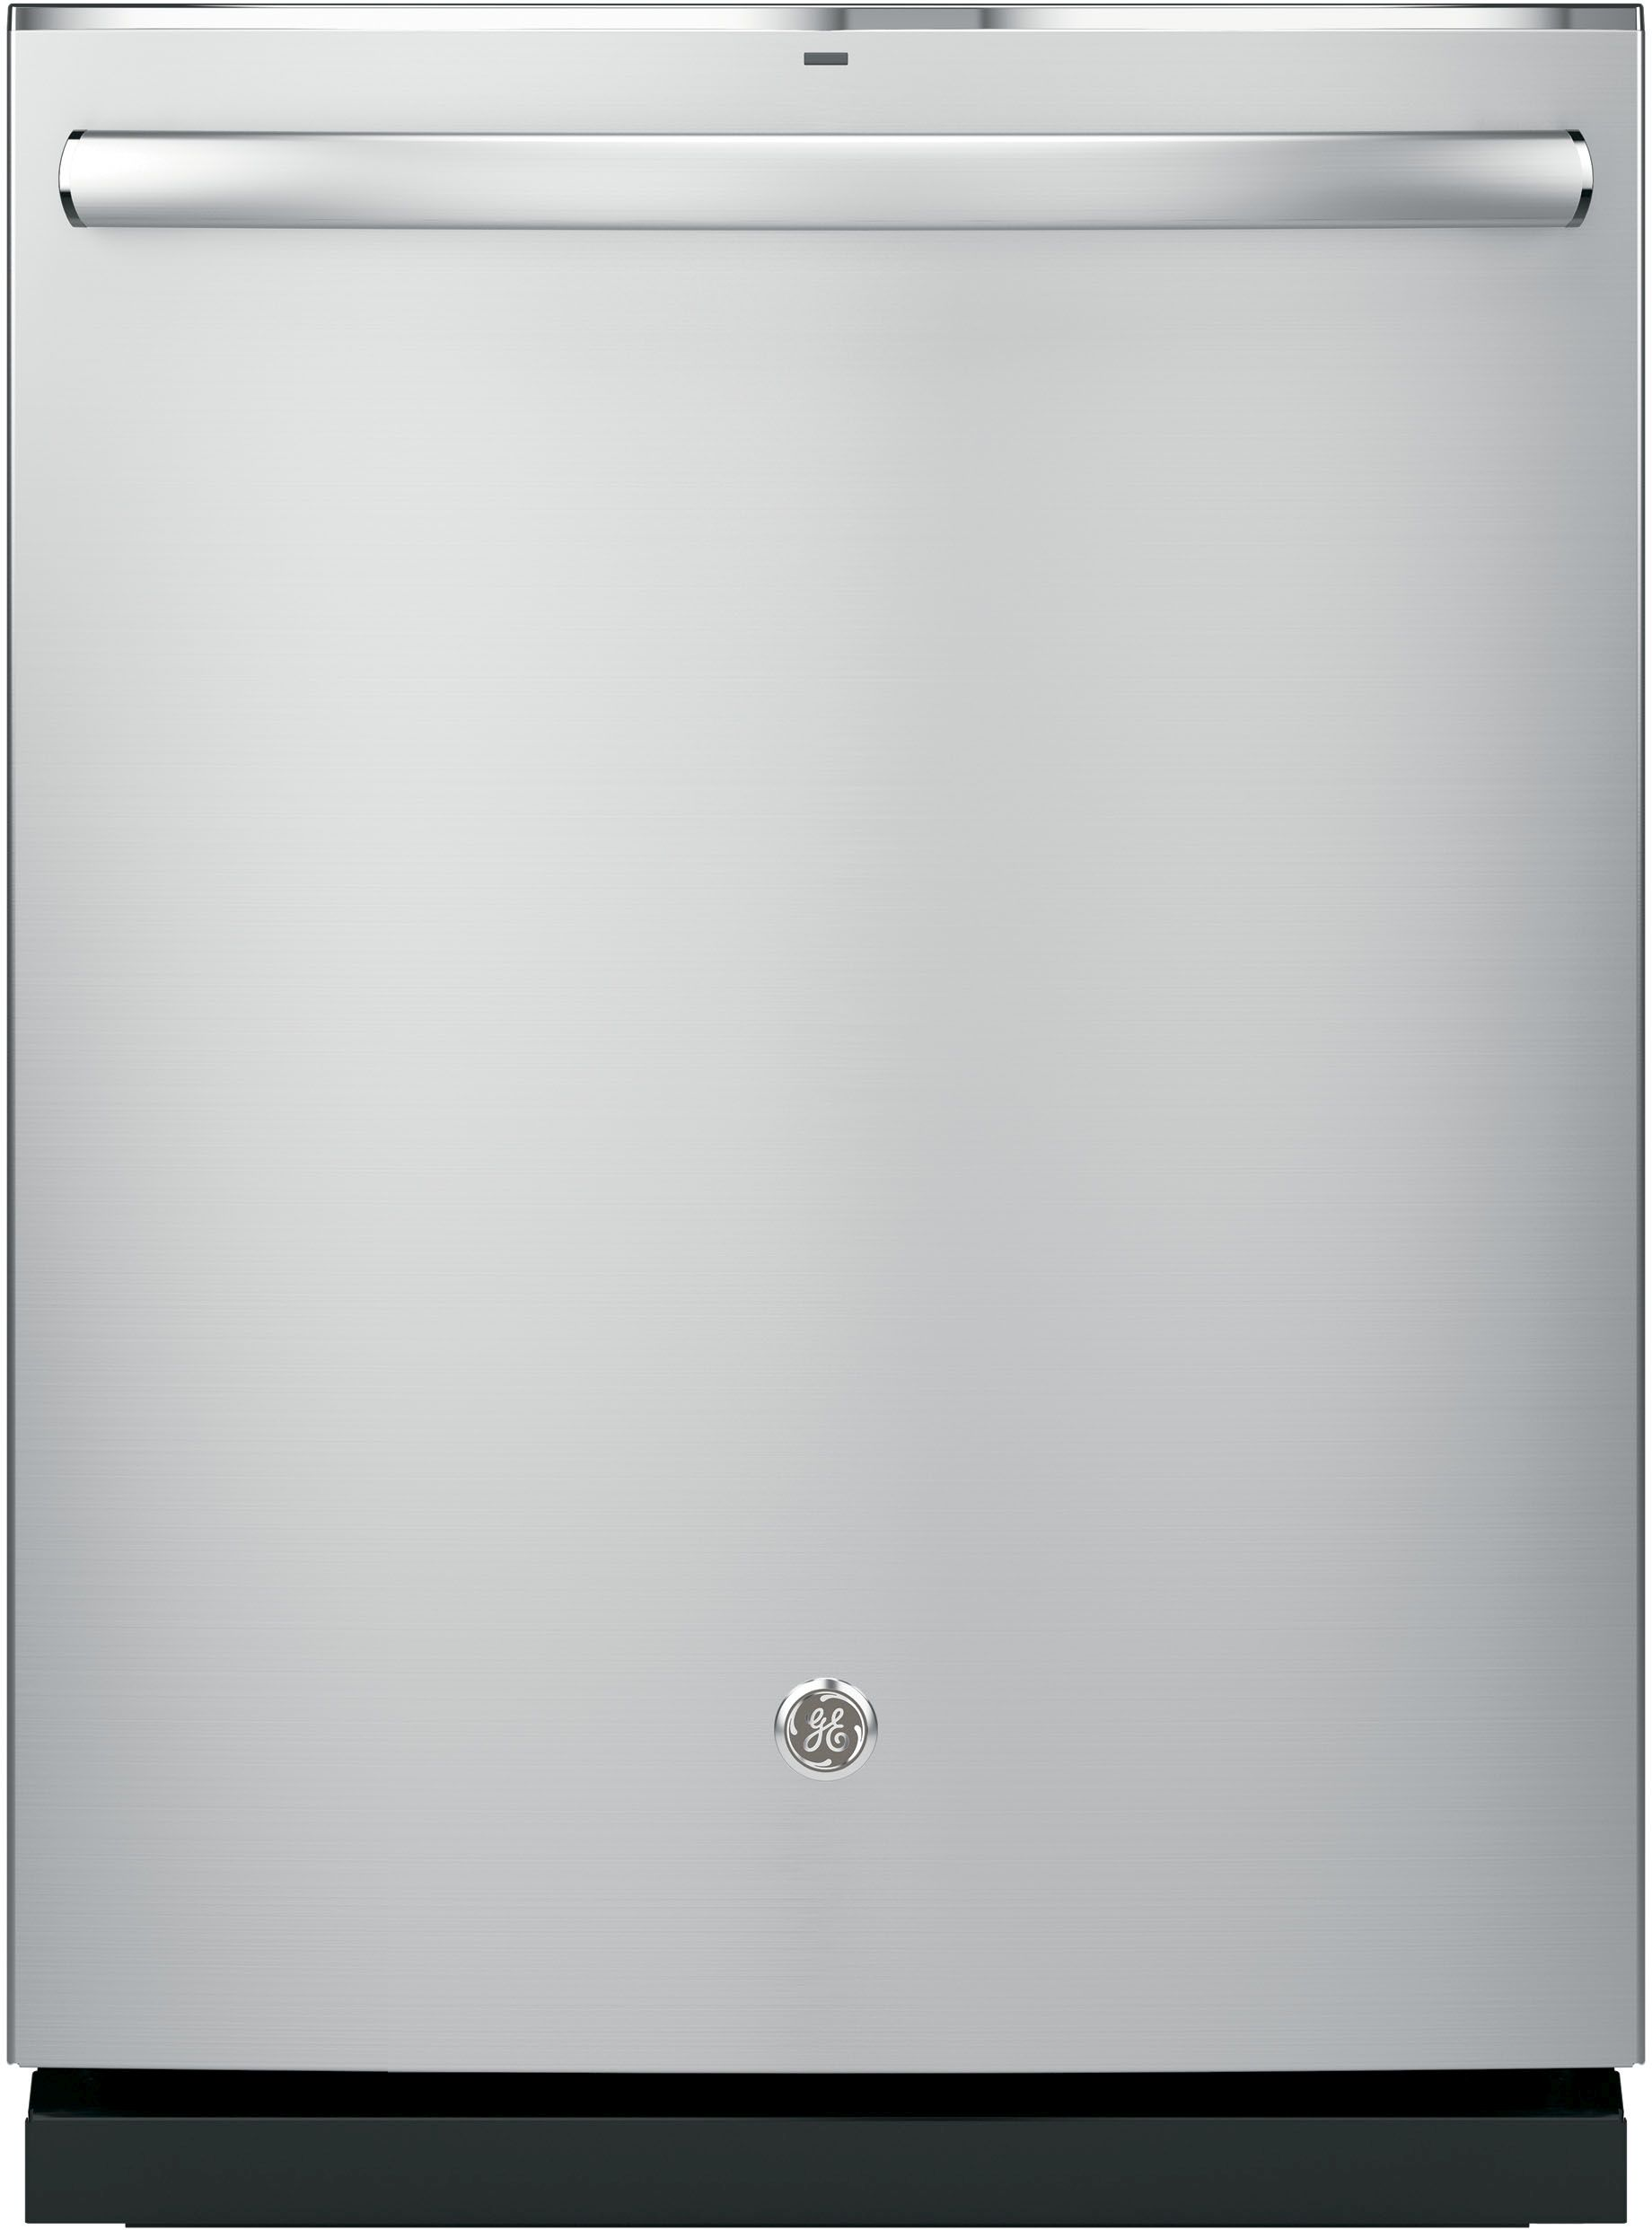 Ge 24 Built In Dishwasher Stainless Steel Gdt655ssjss